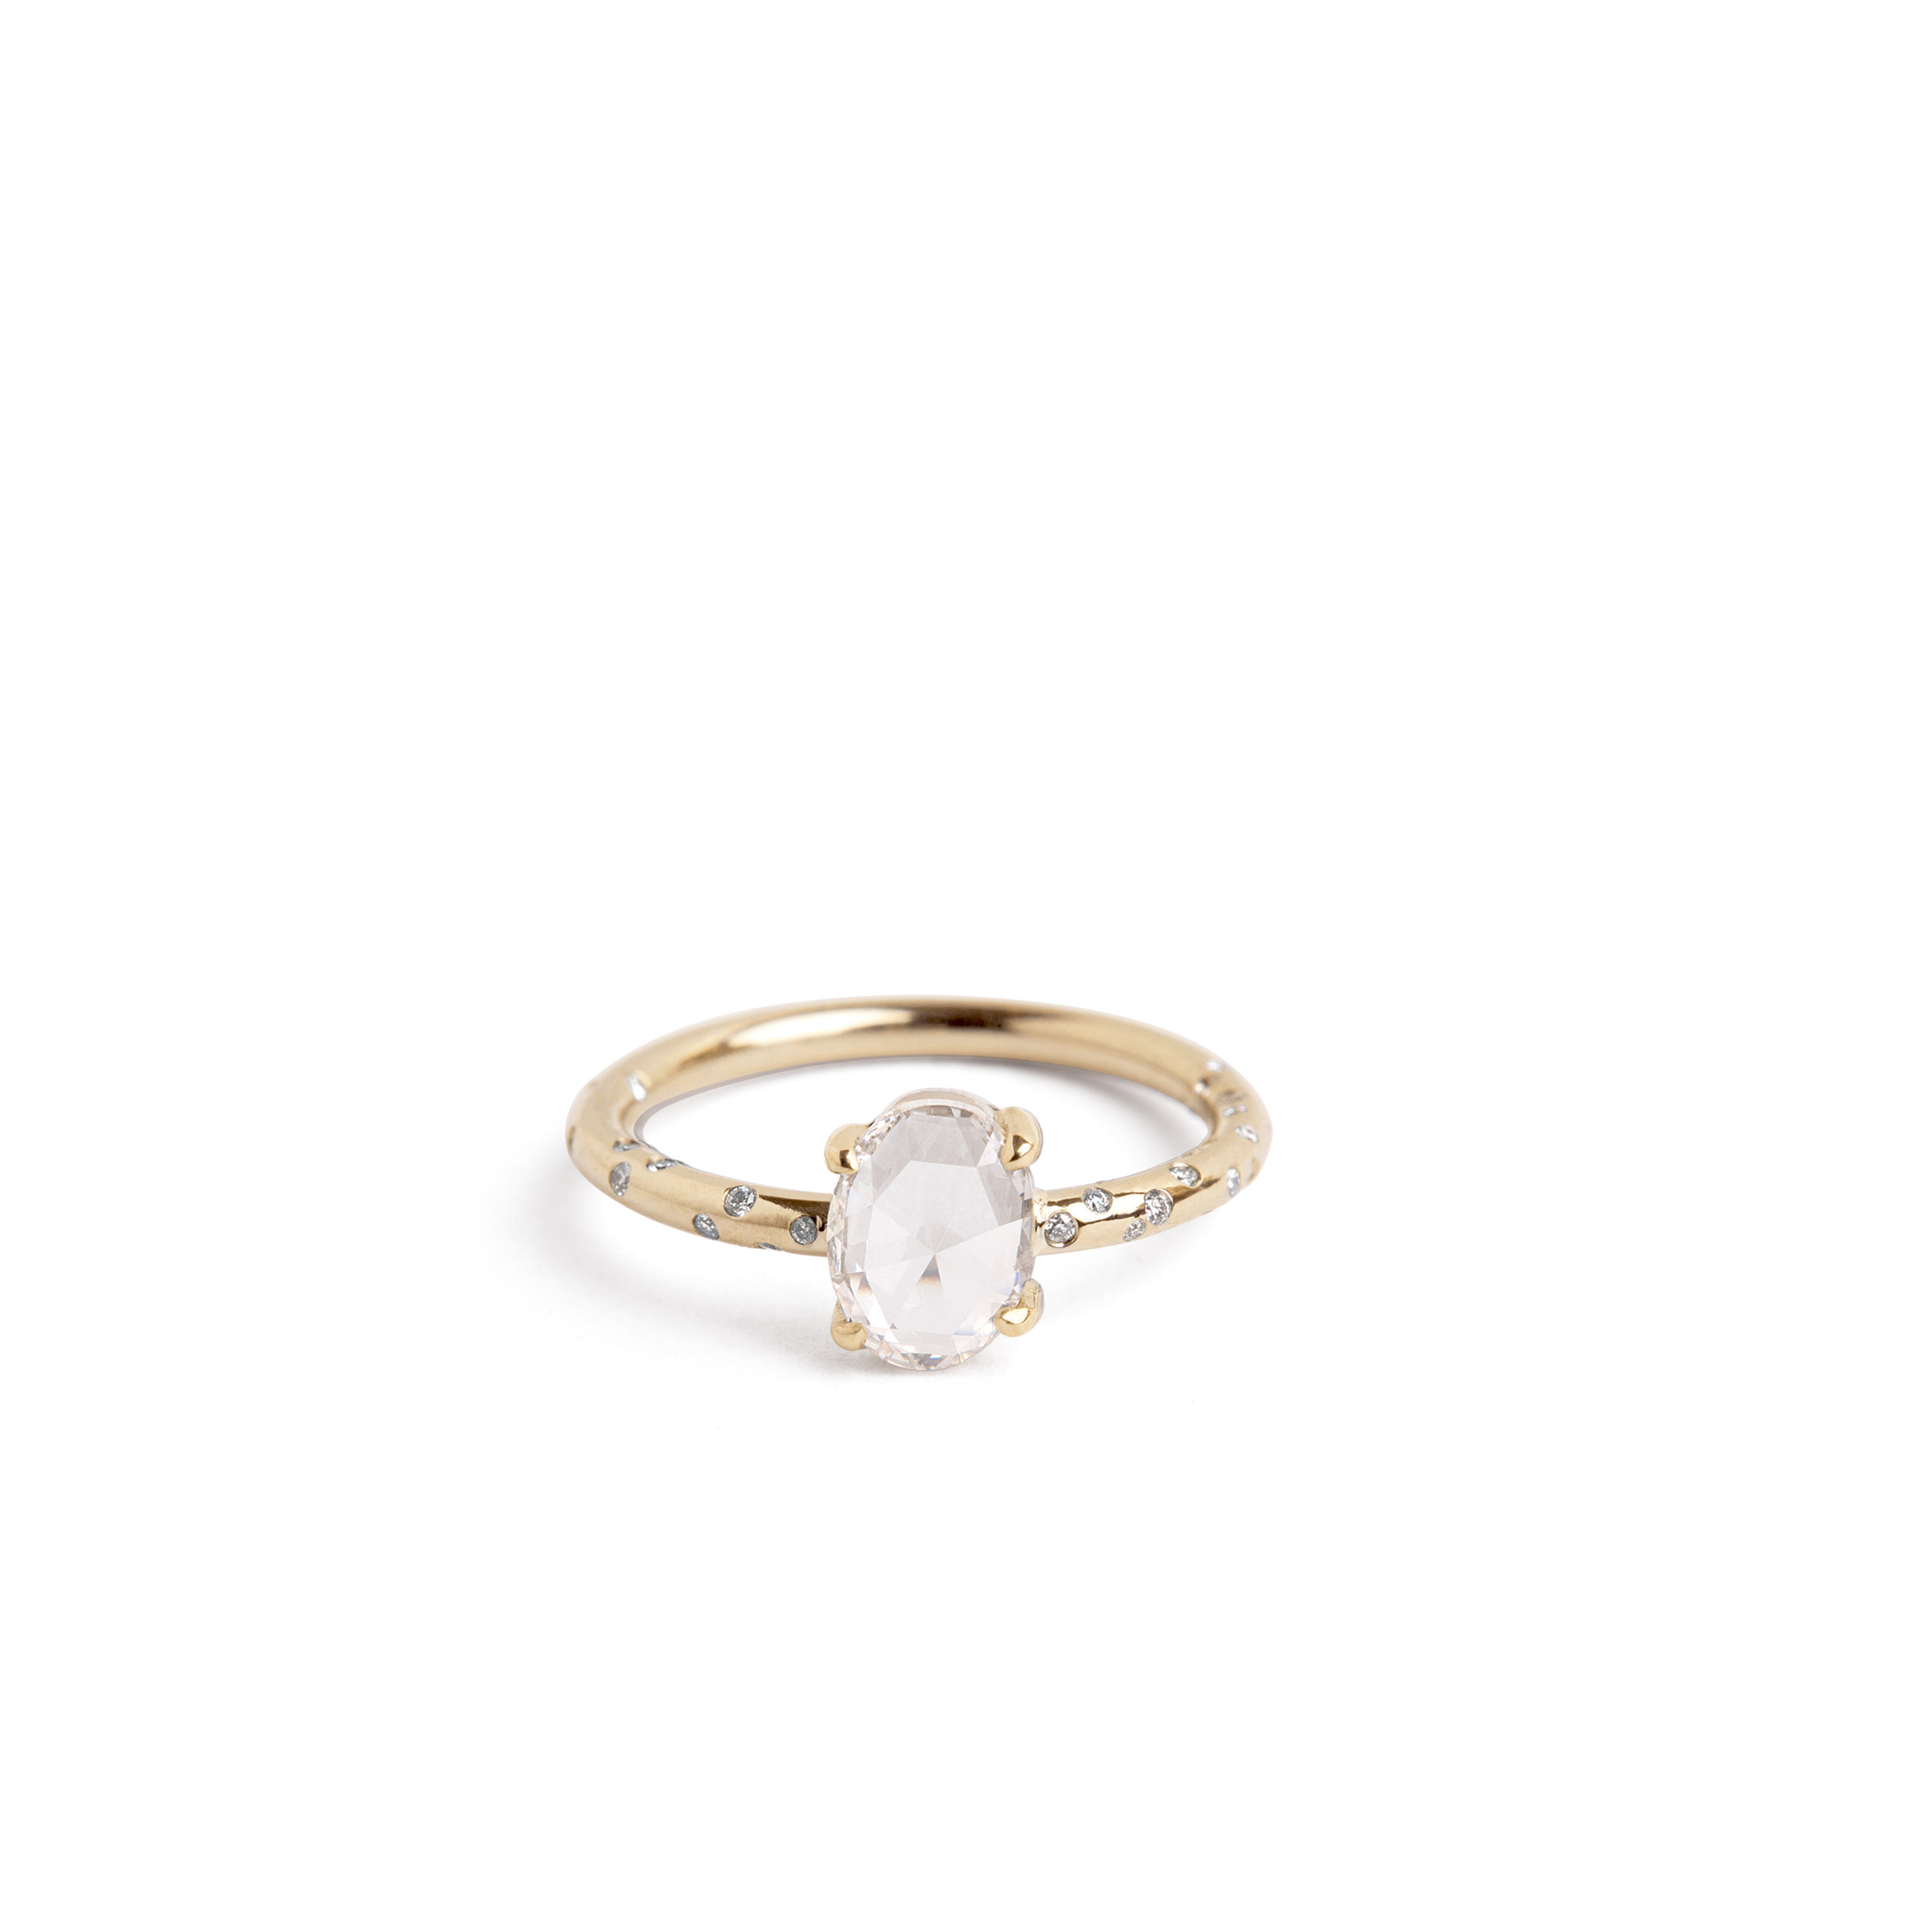 Dew Drop Yellow Gold Oval Rose Cut Diamond Solitaire Ring: Drop Oval Wedding Ring At Websimilar.org